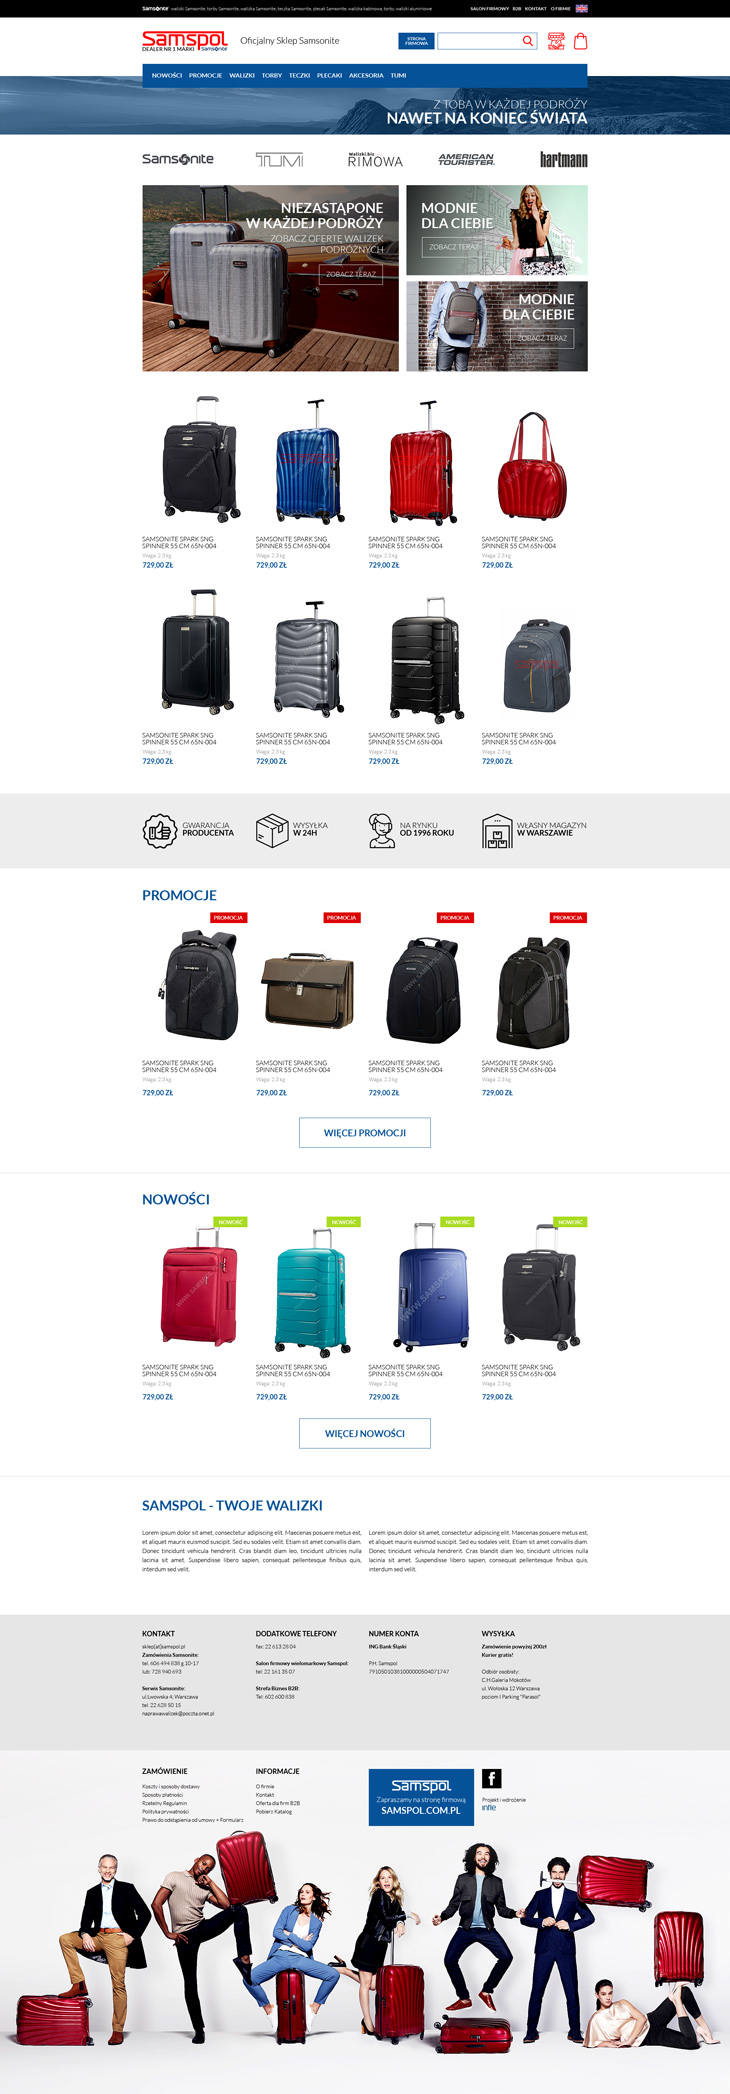 SAMSPOL - Samsonite official store